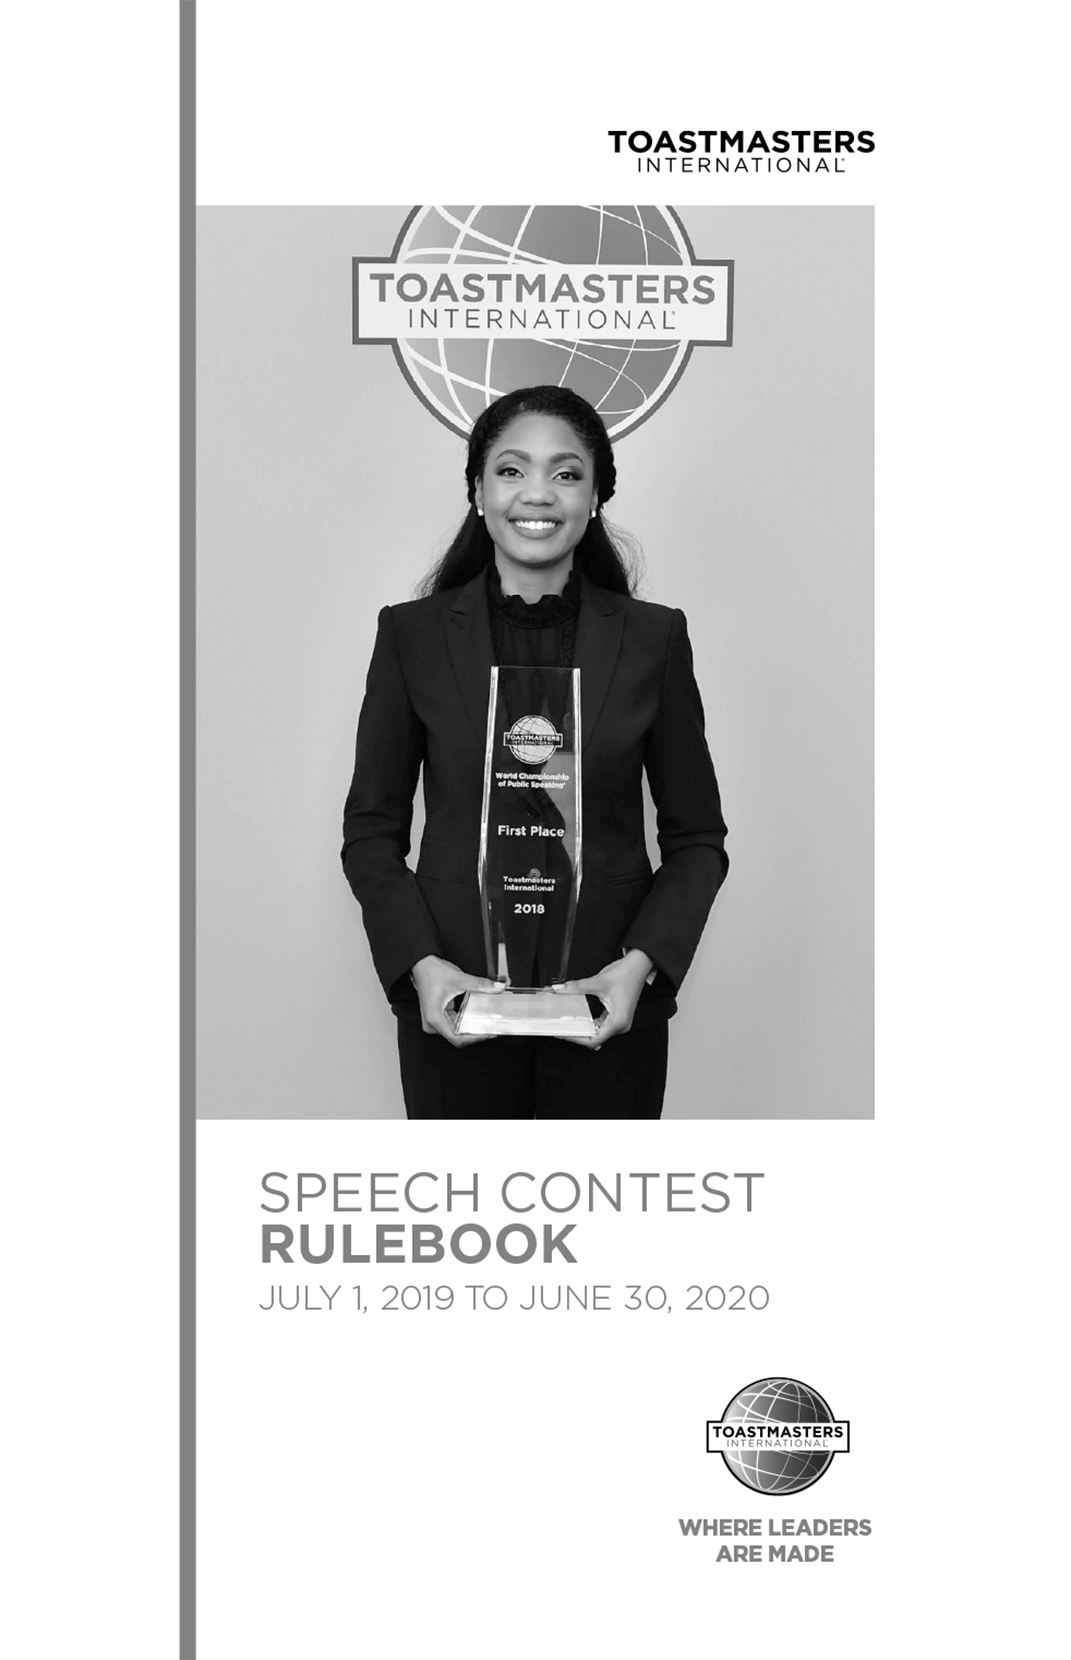 Speech Contest Rulebook